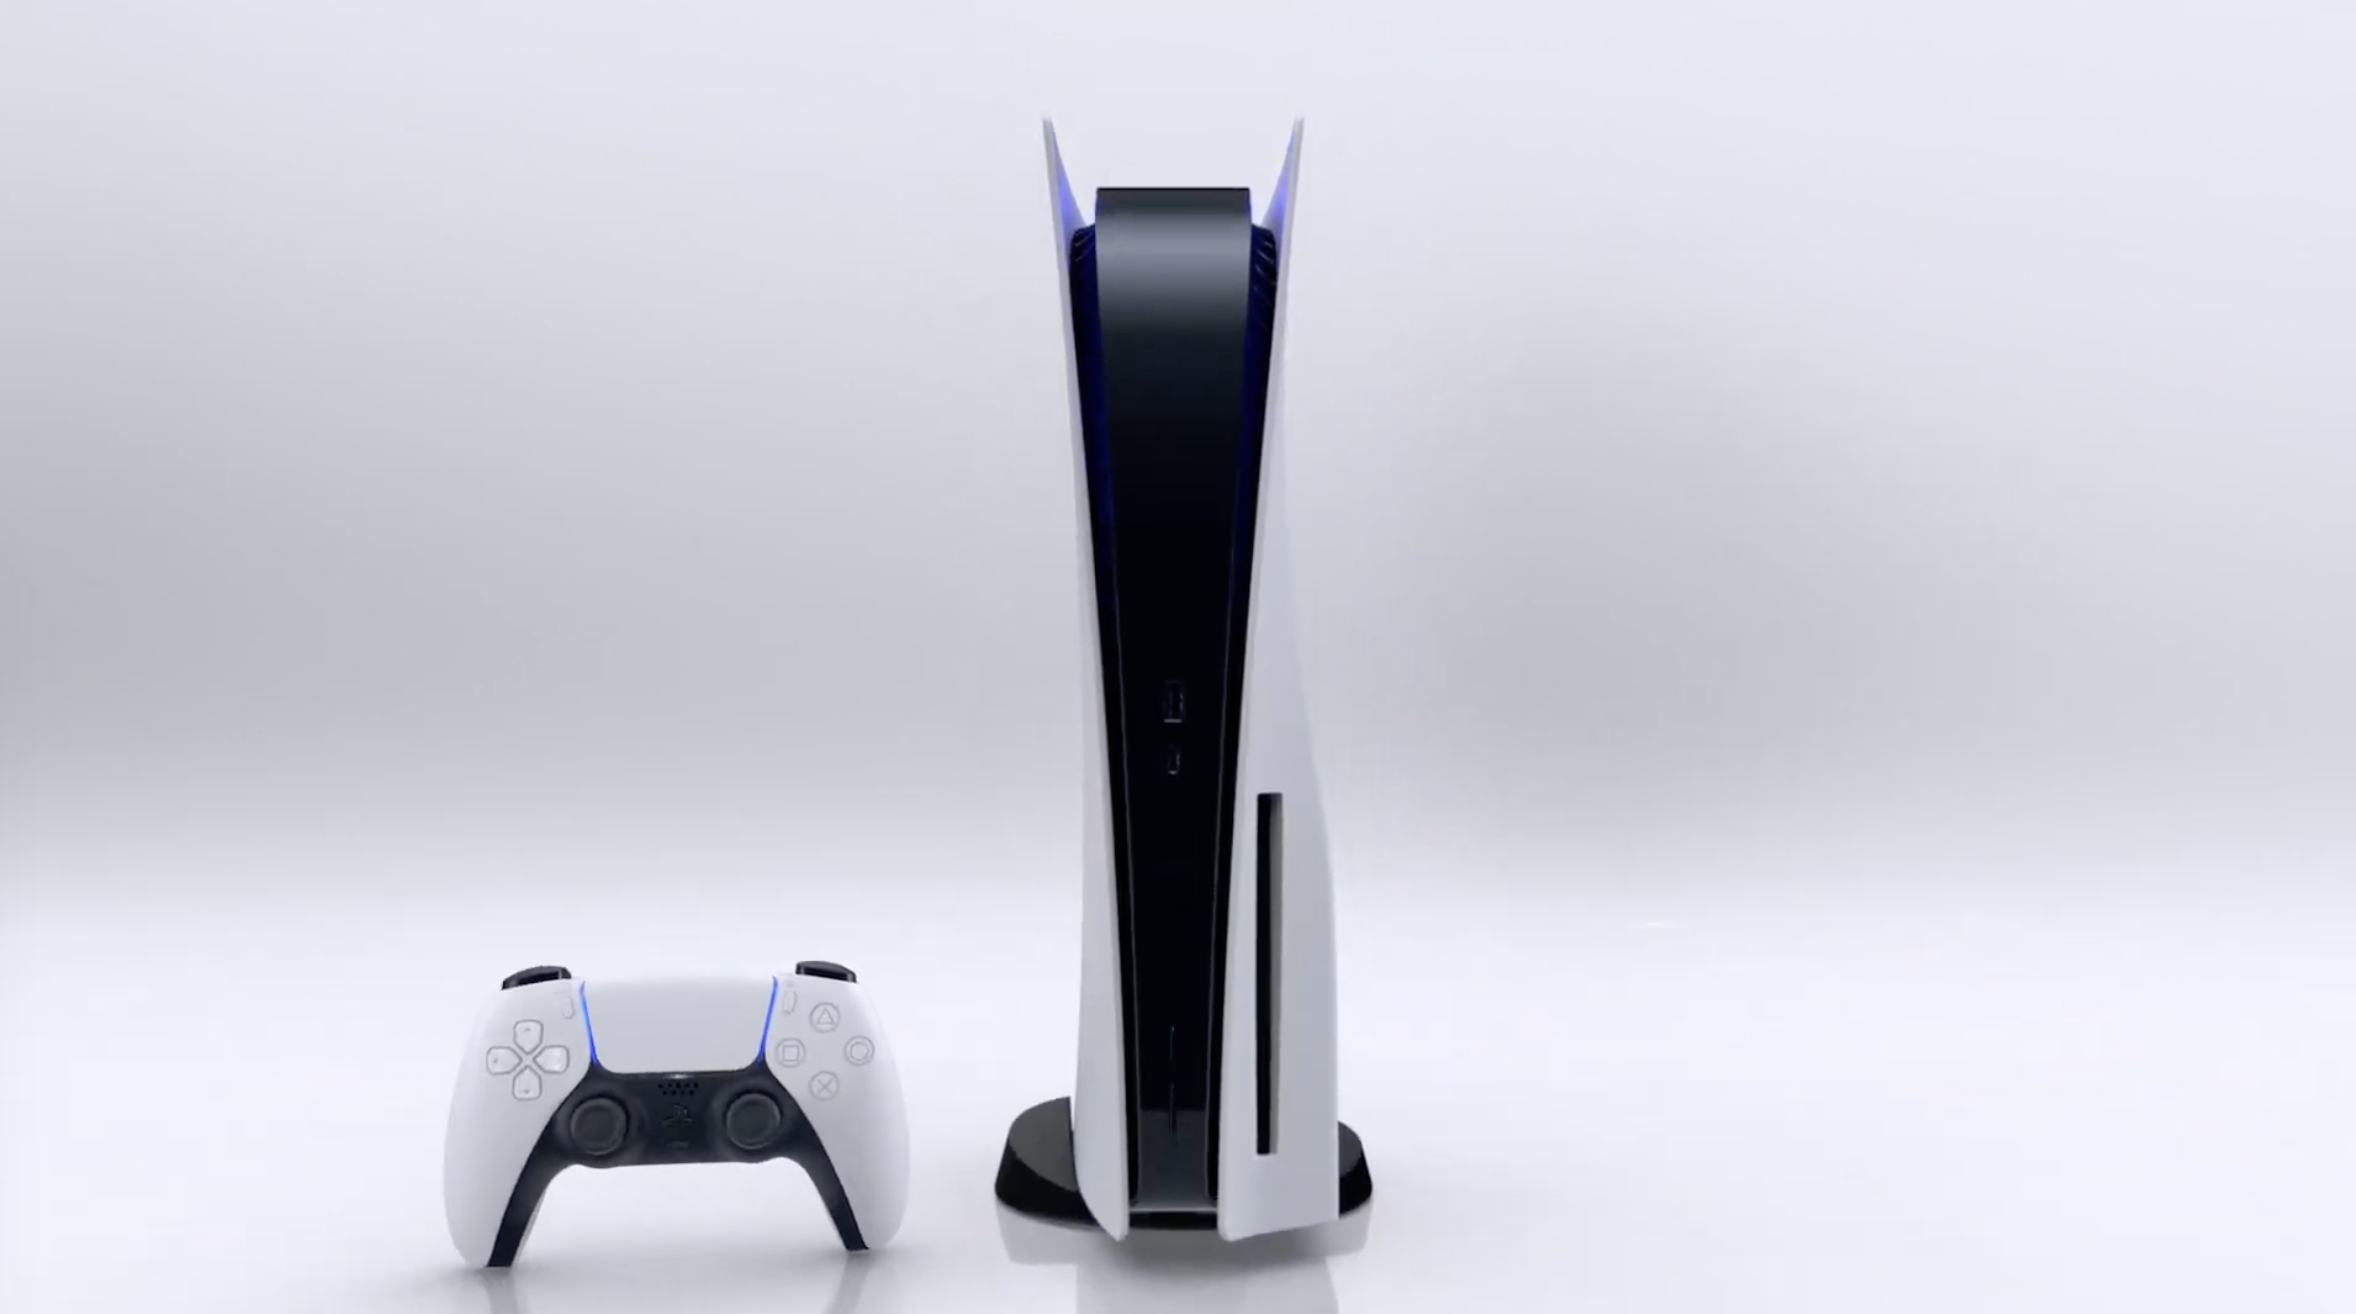 sony-playstation-5.png